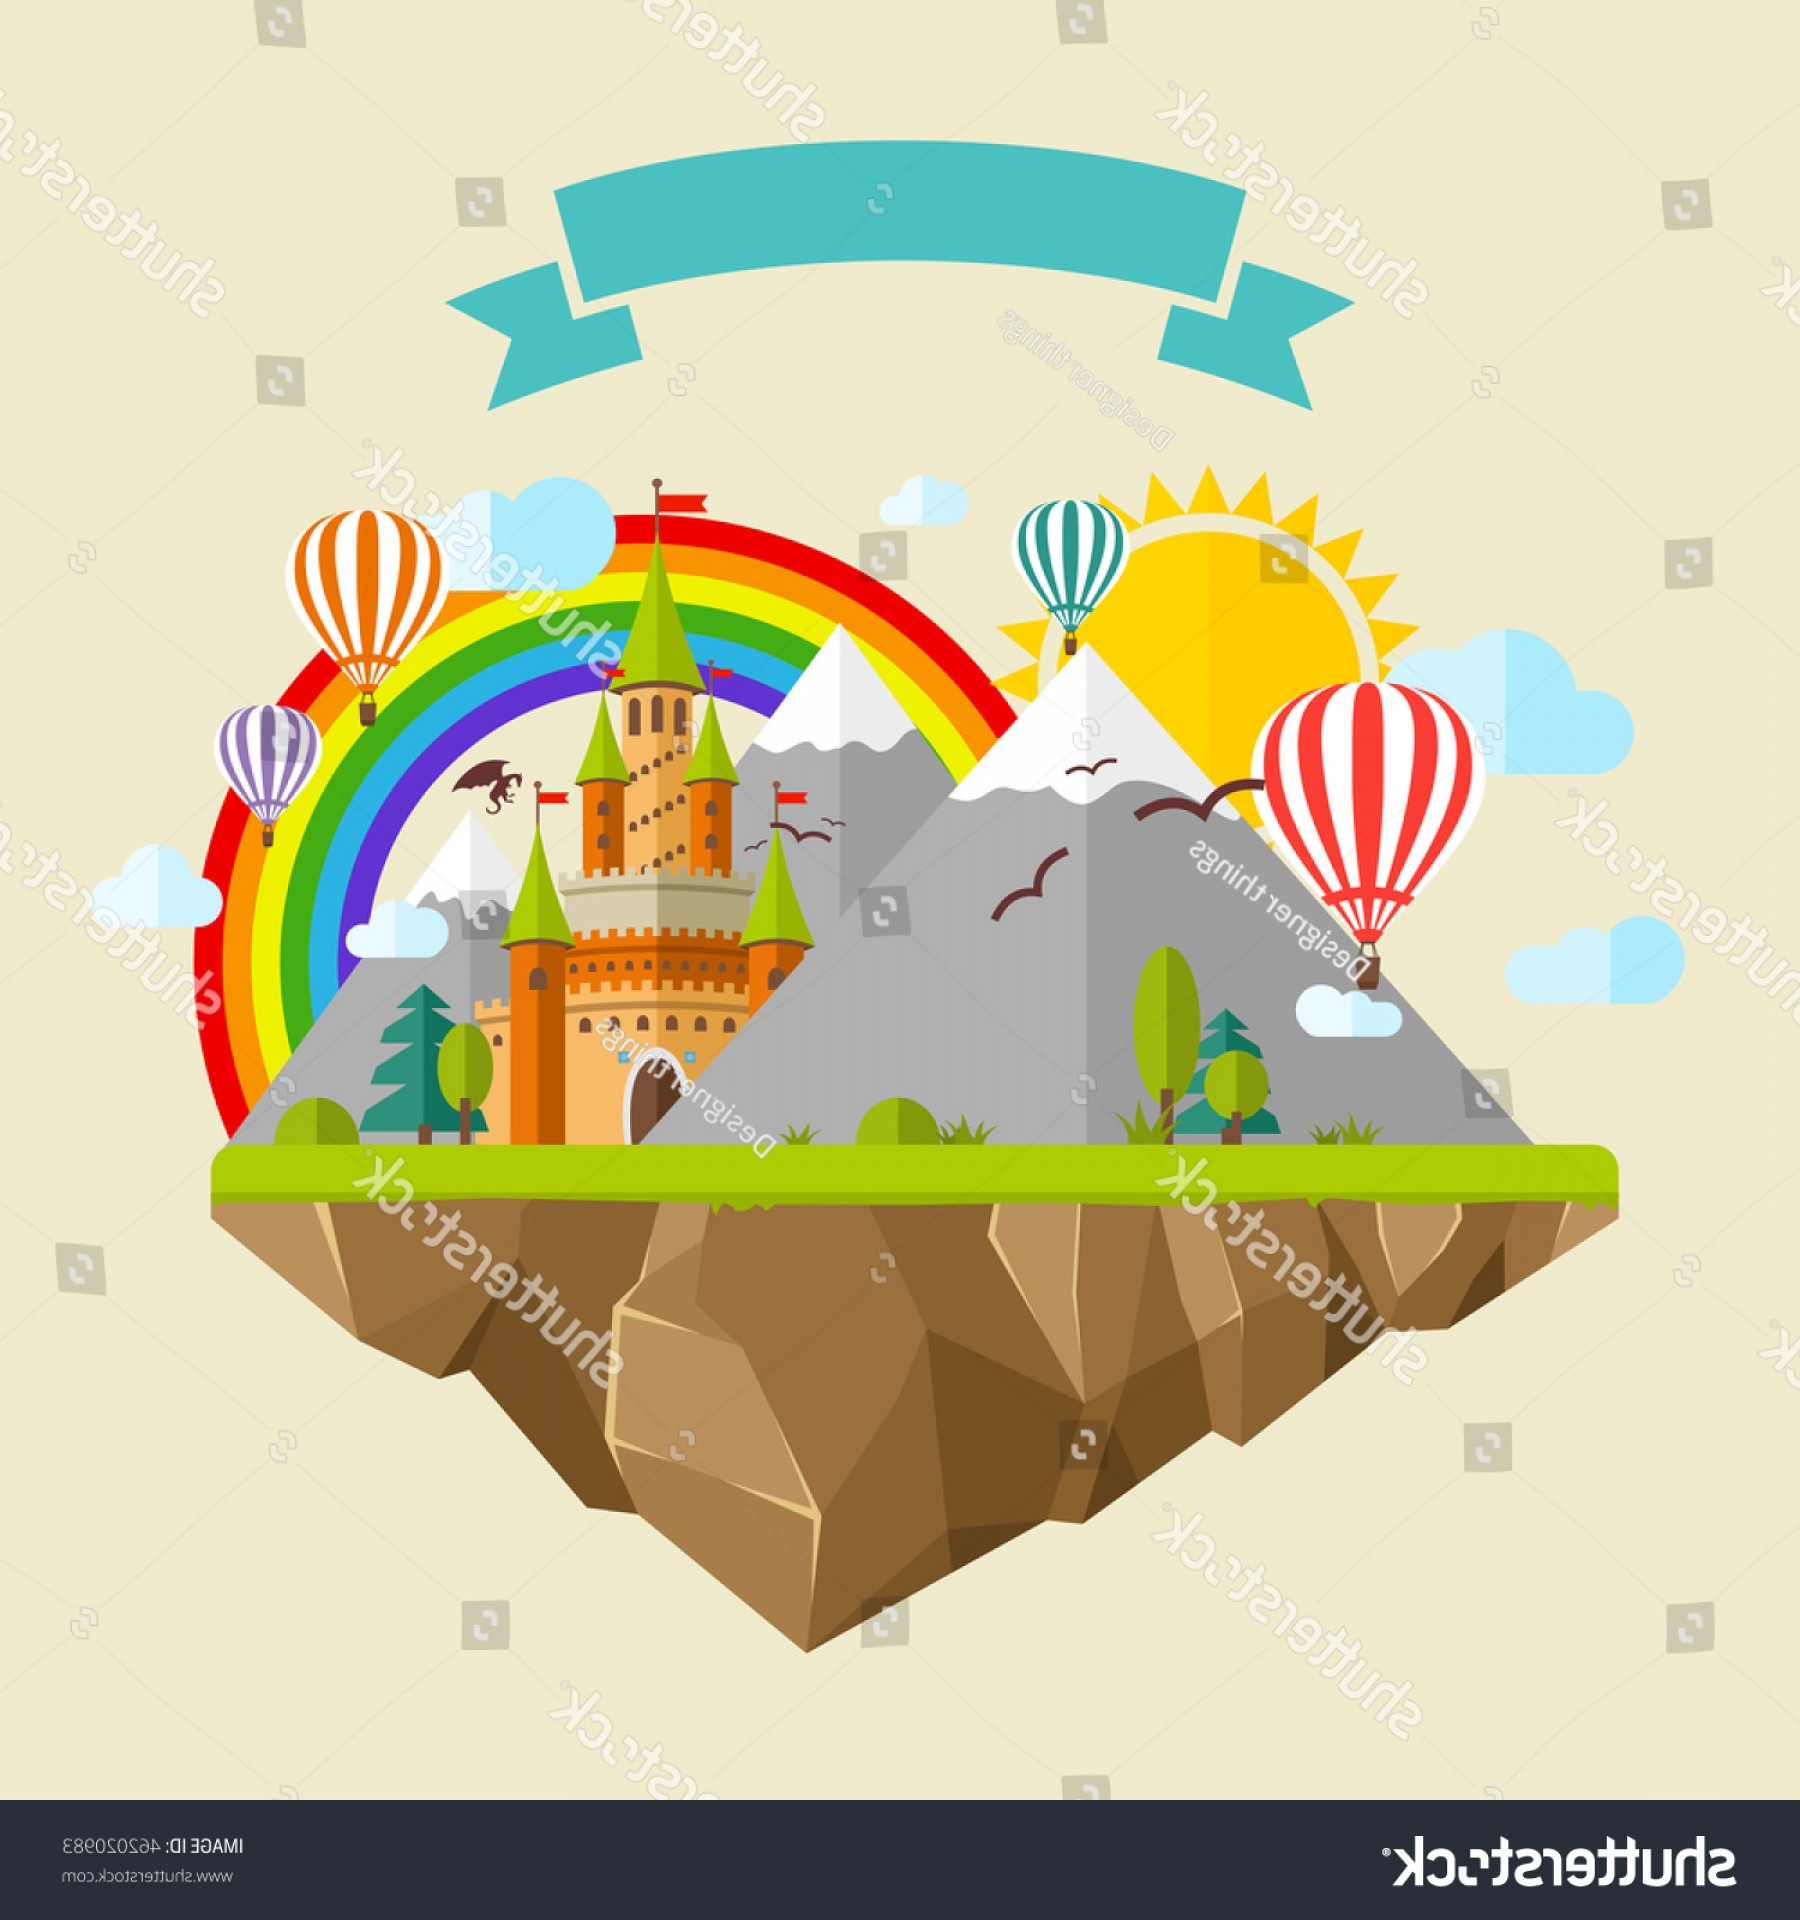 Vectors Fortress Flying: Flying Island Fairy Tale Castle Balloons